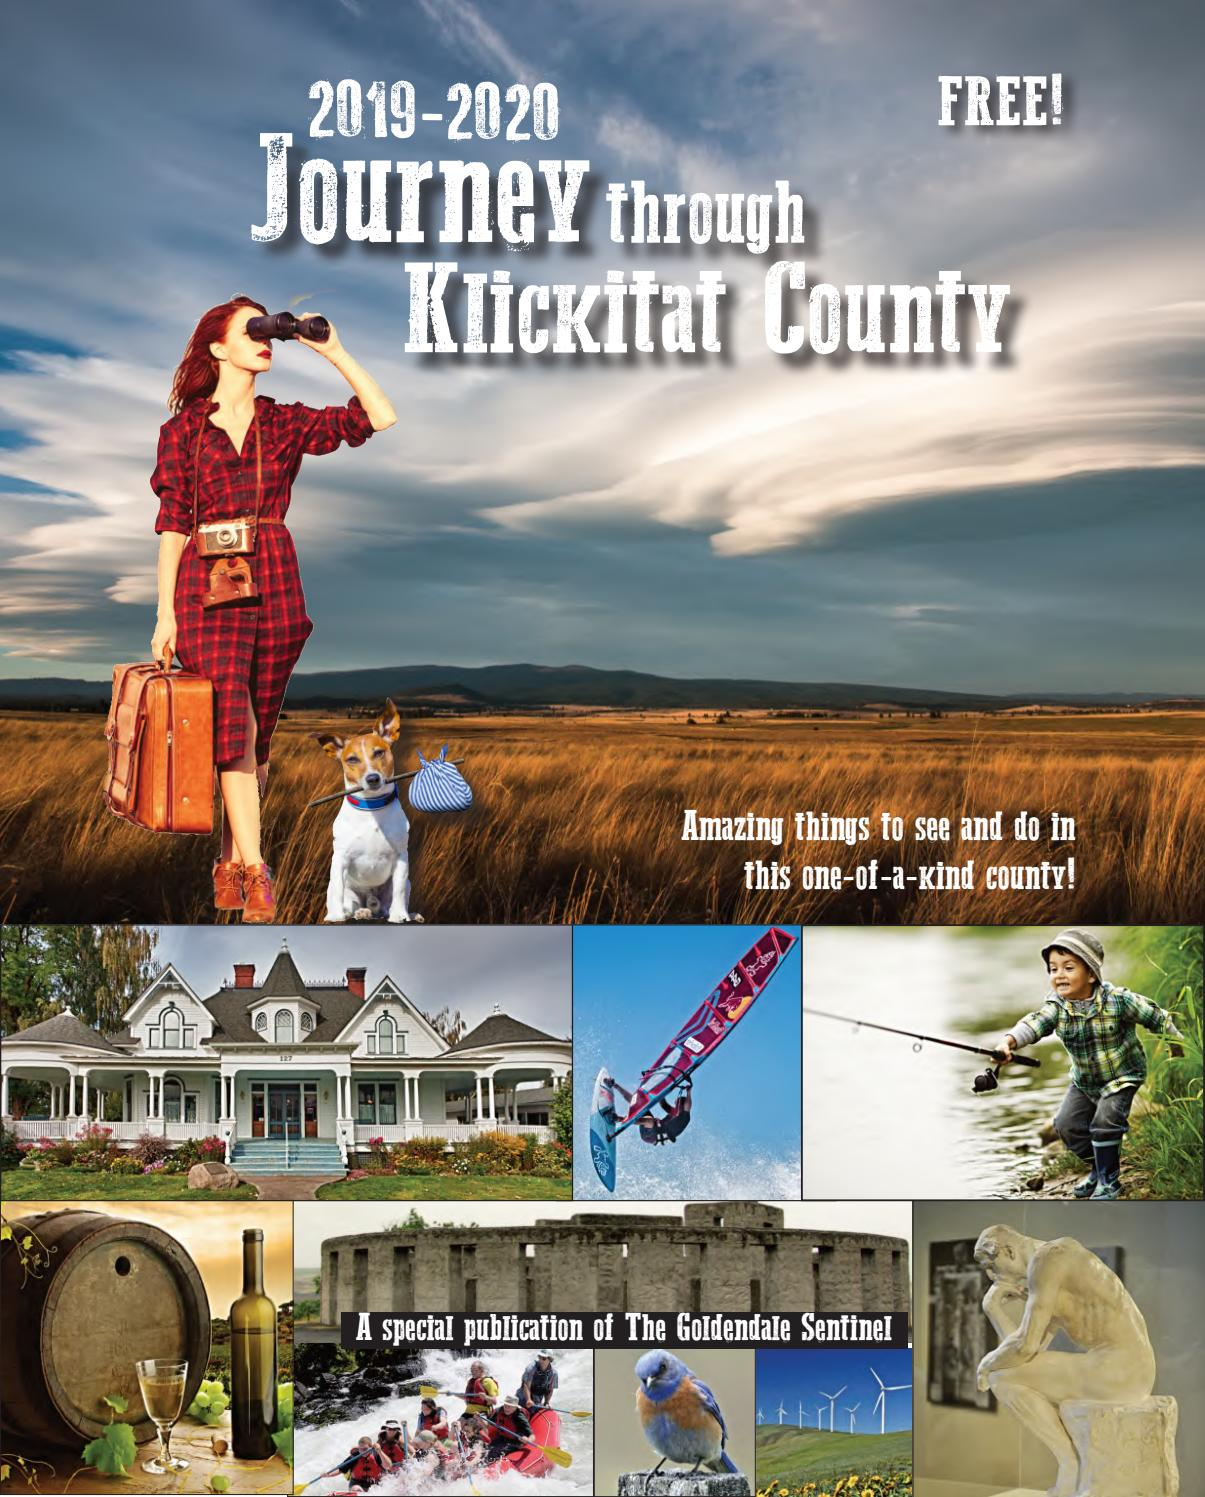 Journey Through Klickitat County 2019 2020 by Goldendale Sentinel